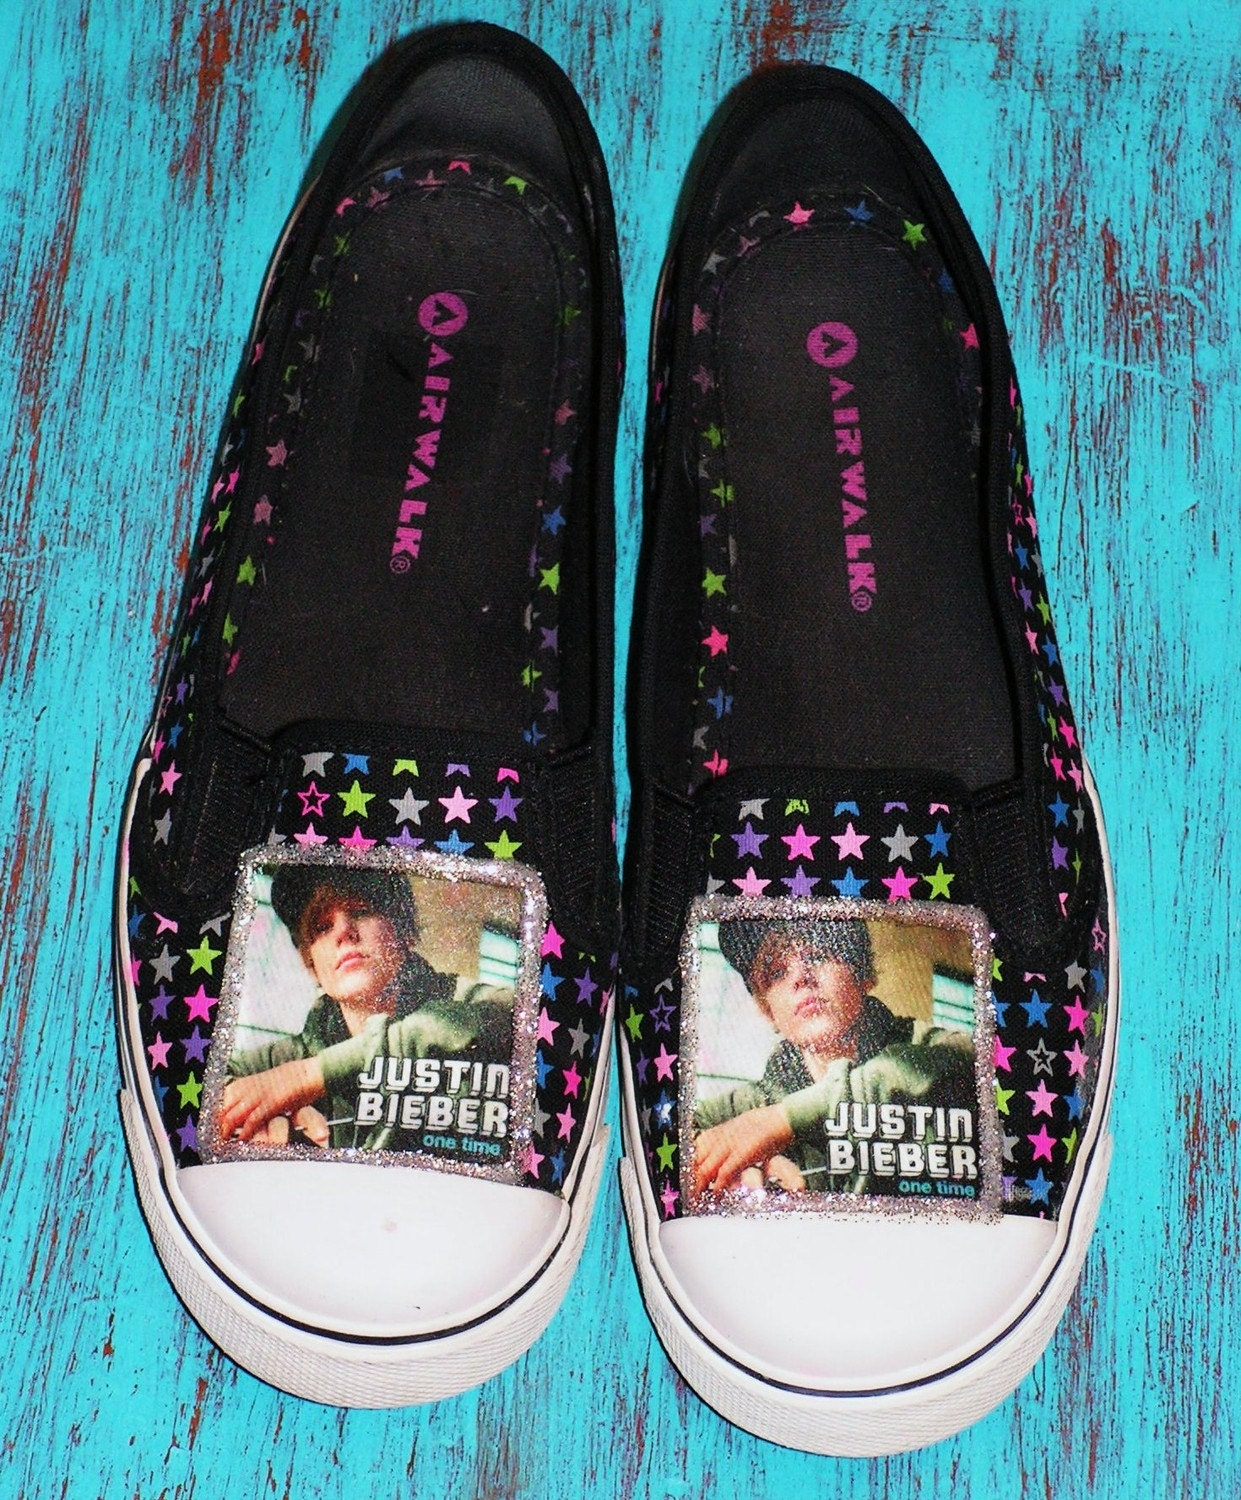 Decorated Size 7 Shoes with pics of Justin Bieber